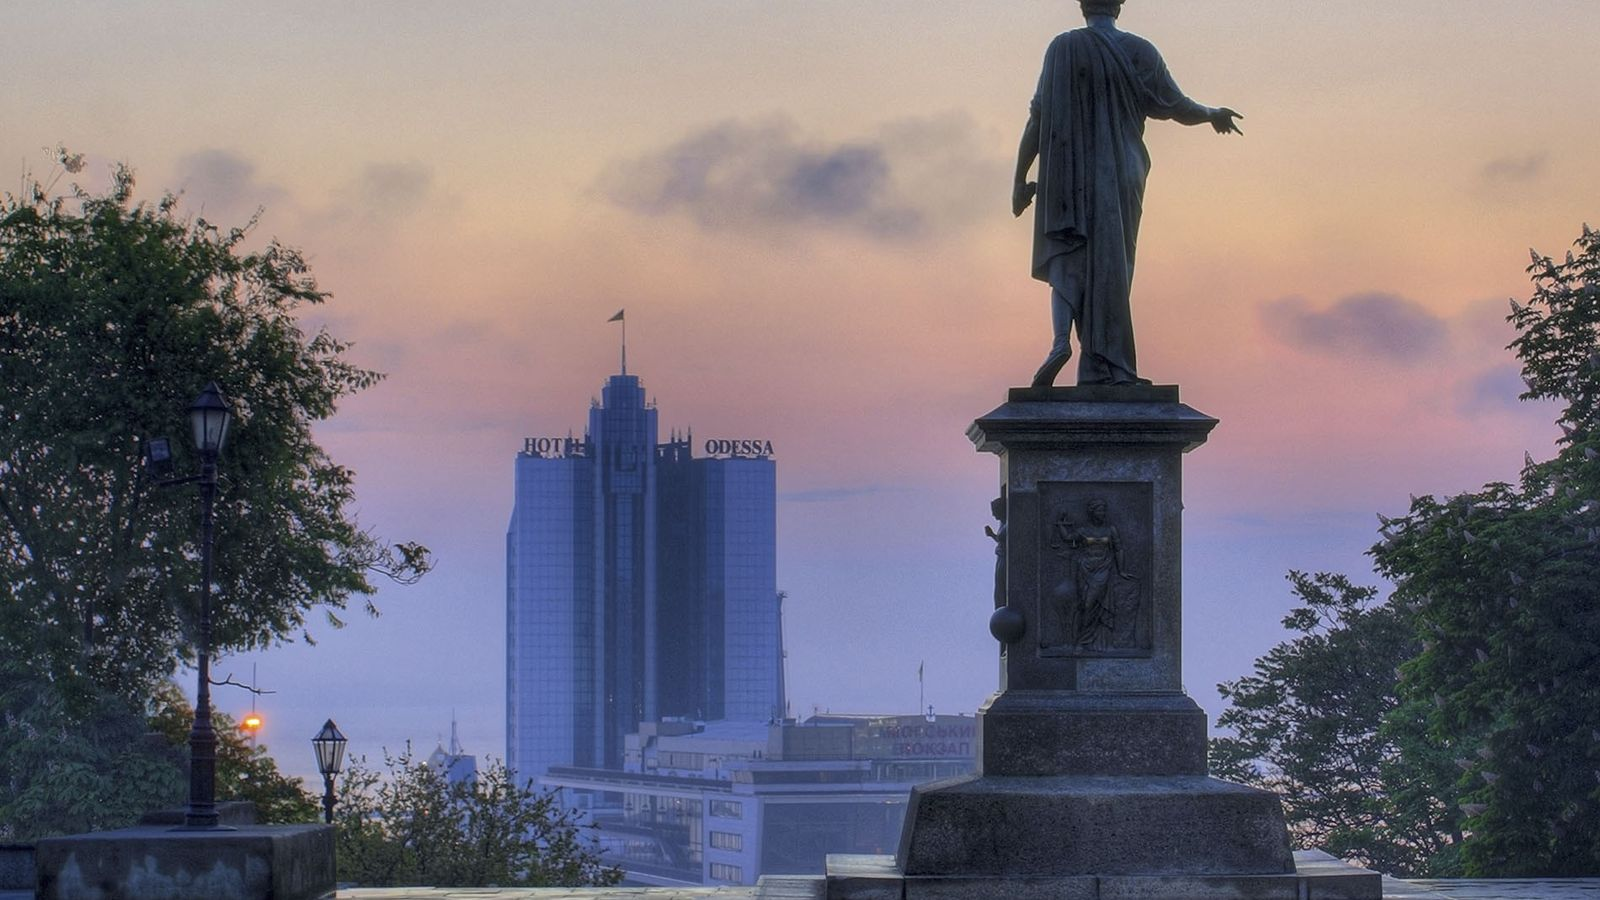 A stature overlooking Hotel Odessa in the distance